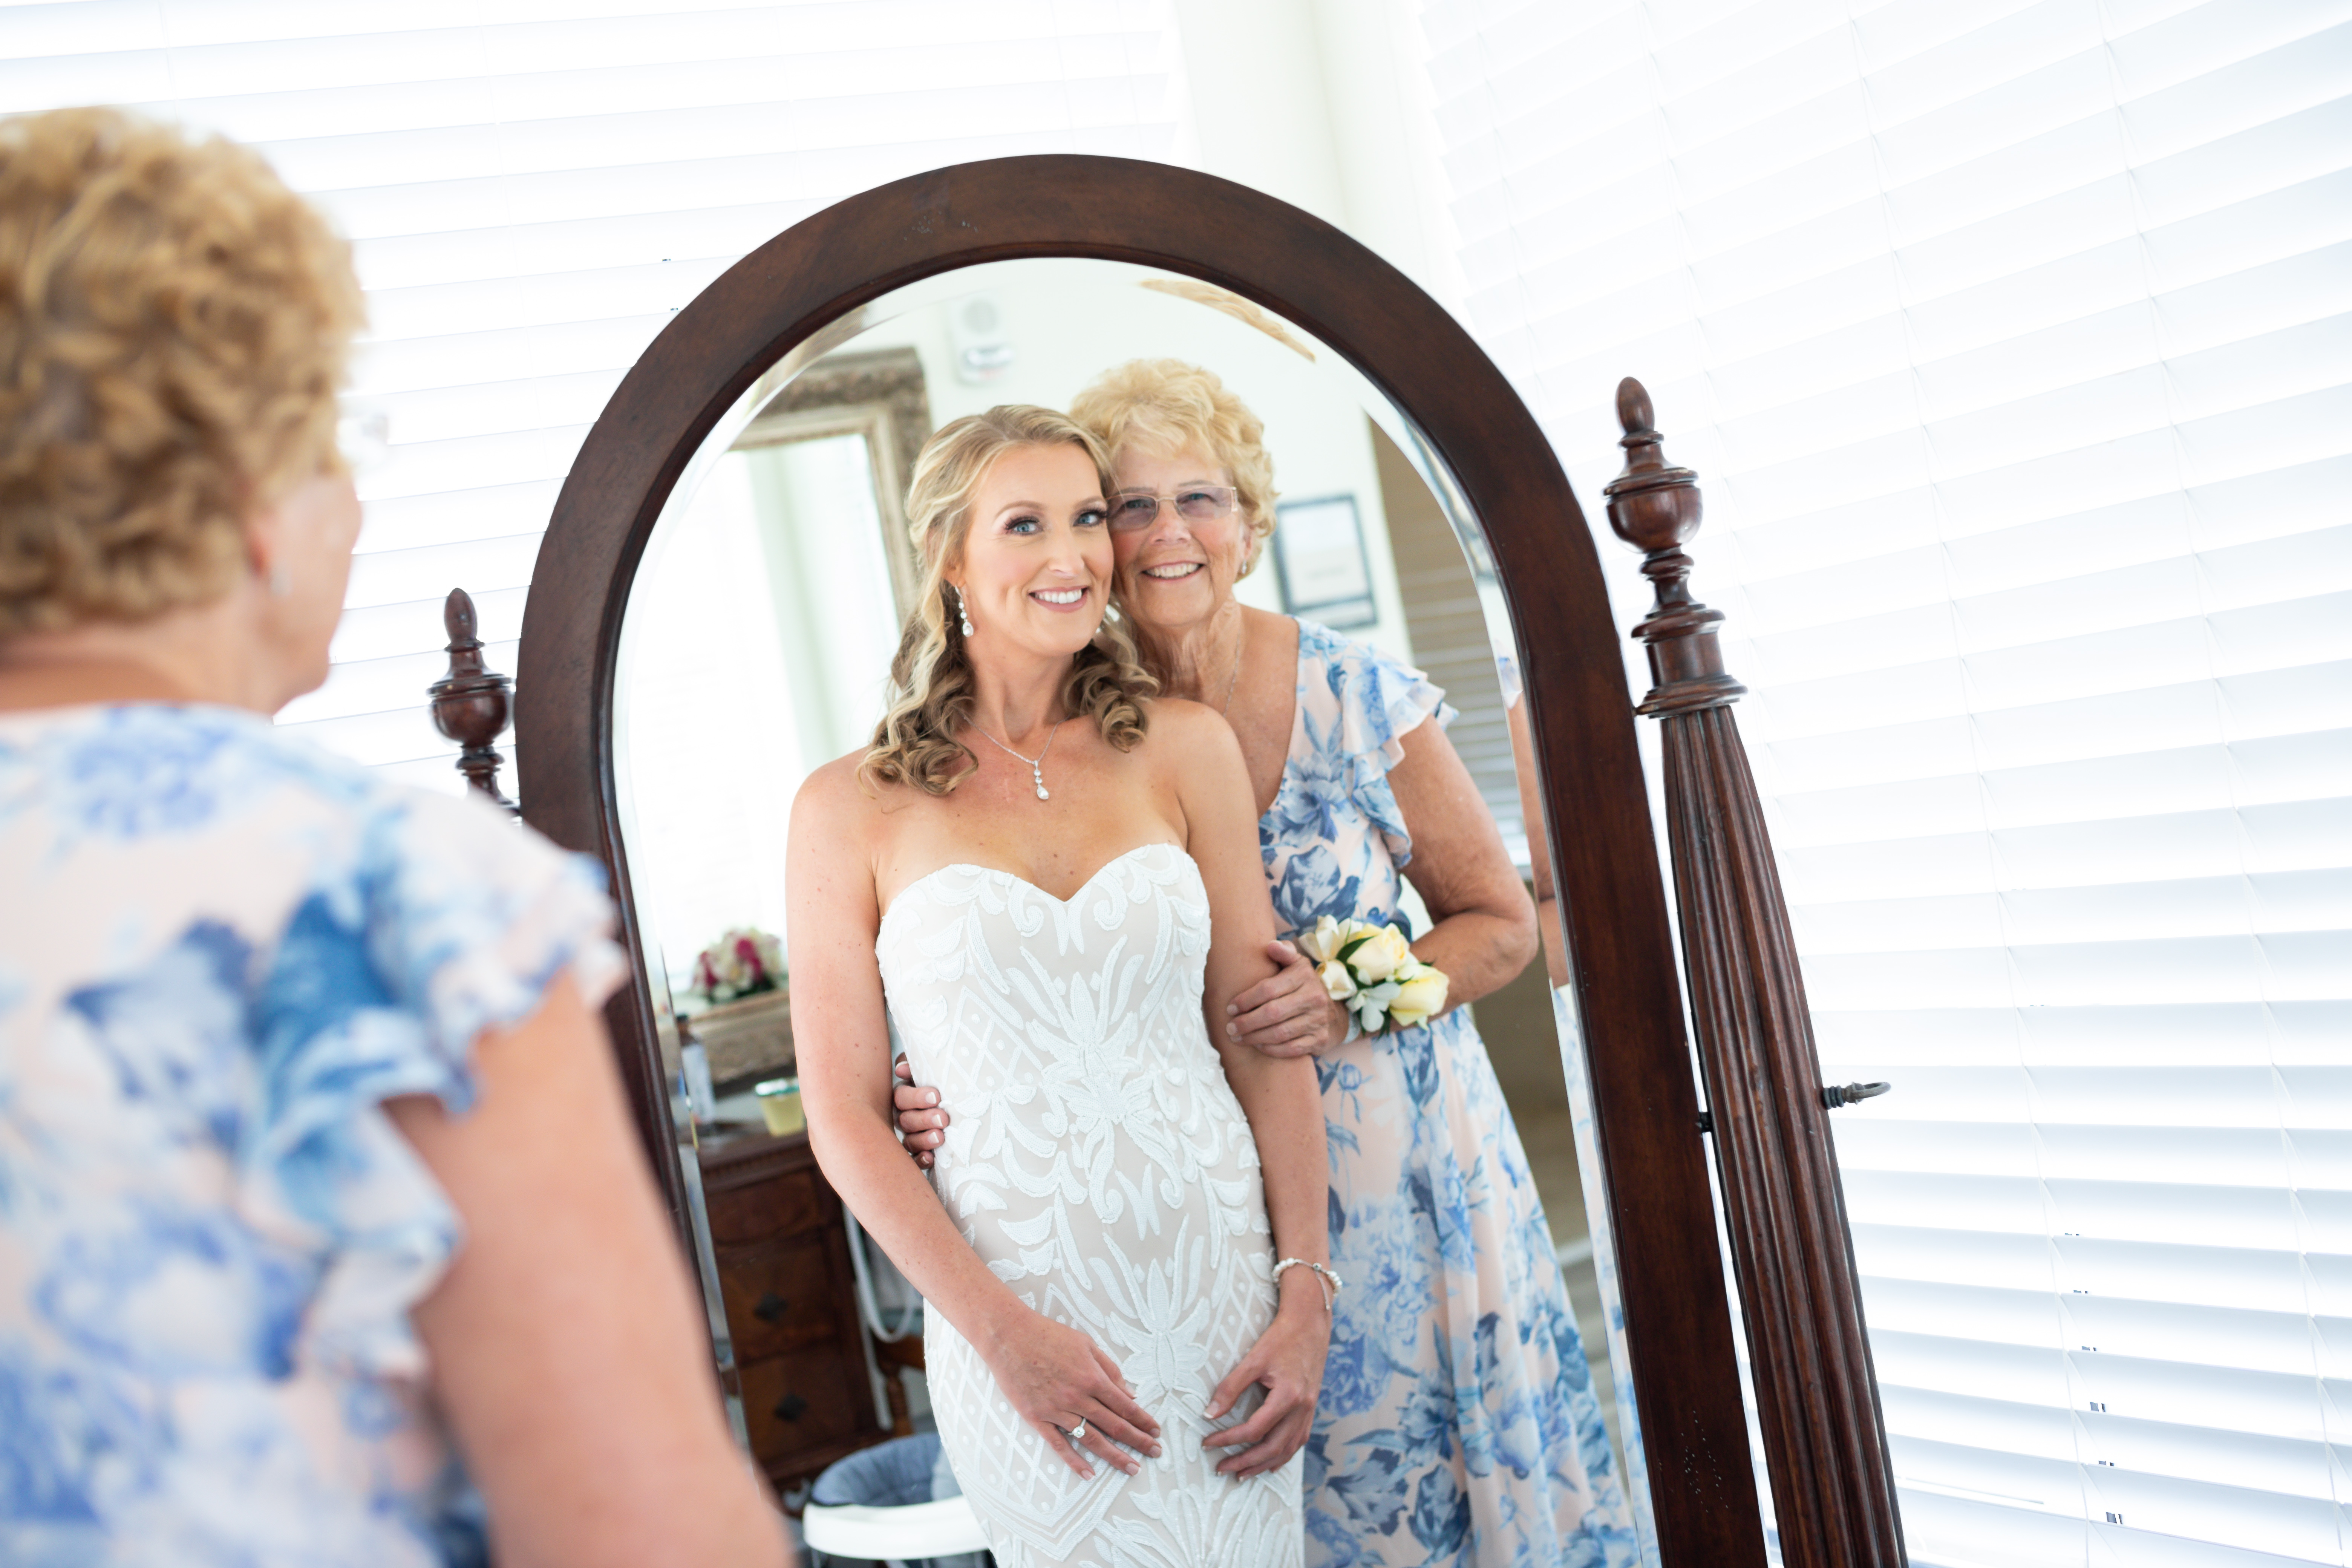 wilson-wedding-june-2020-coastal-click-p